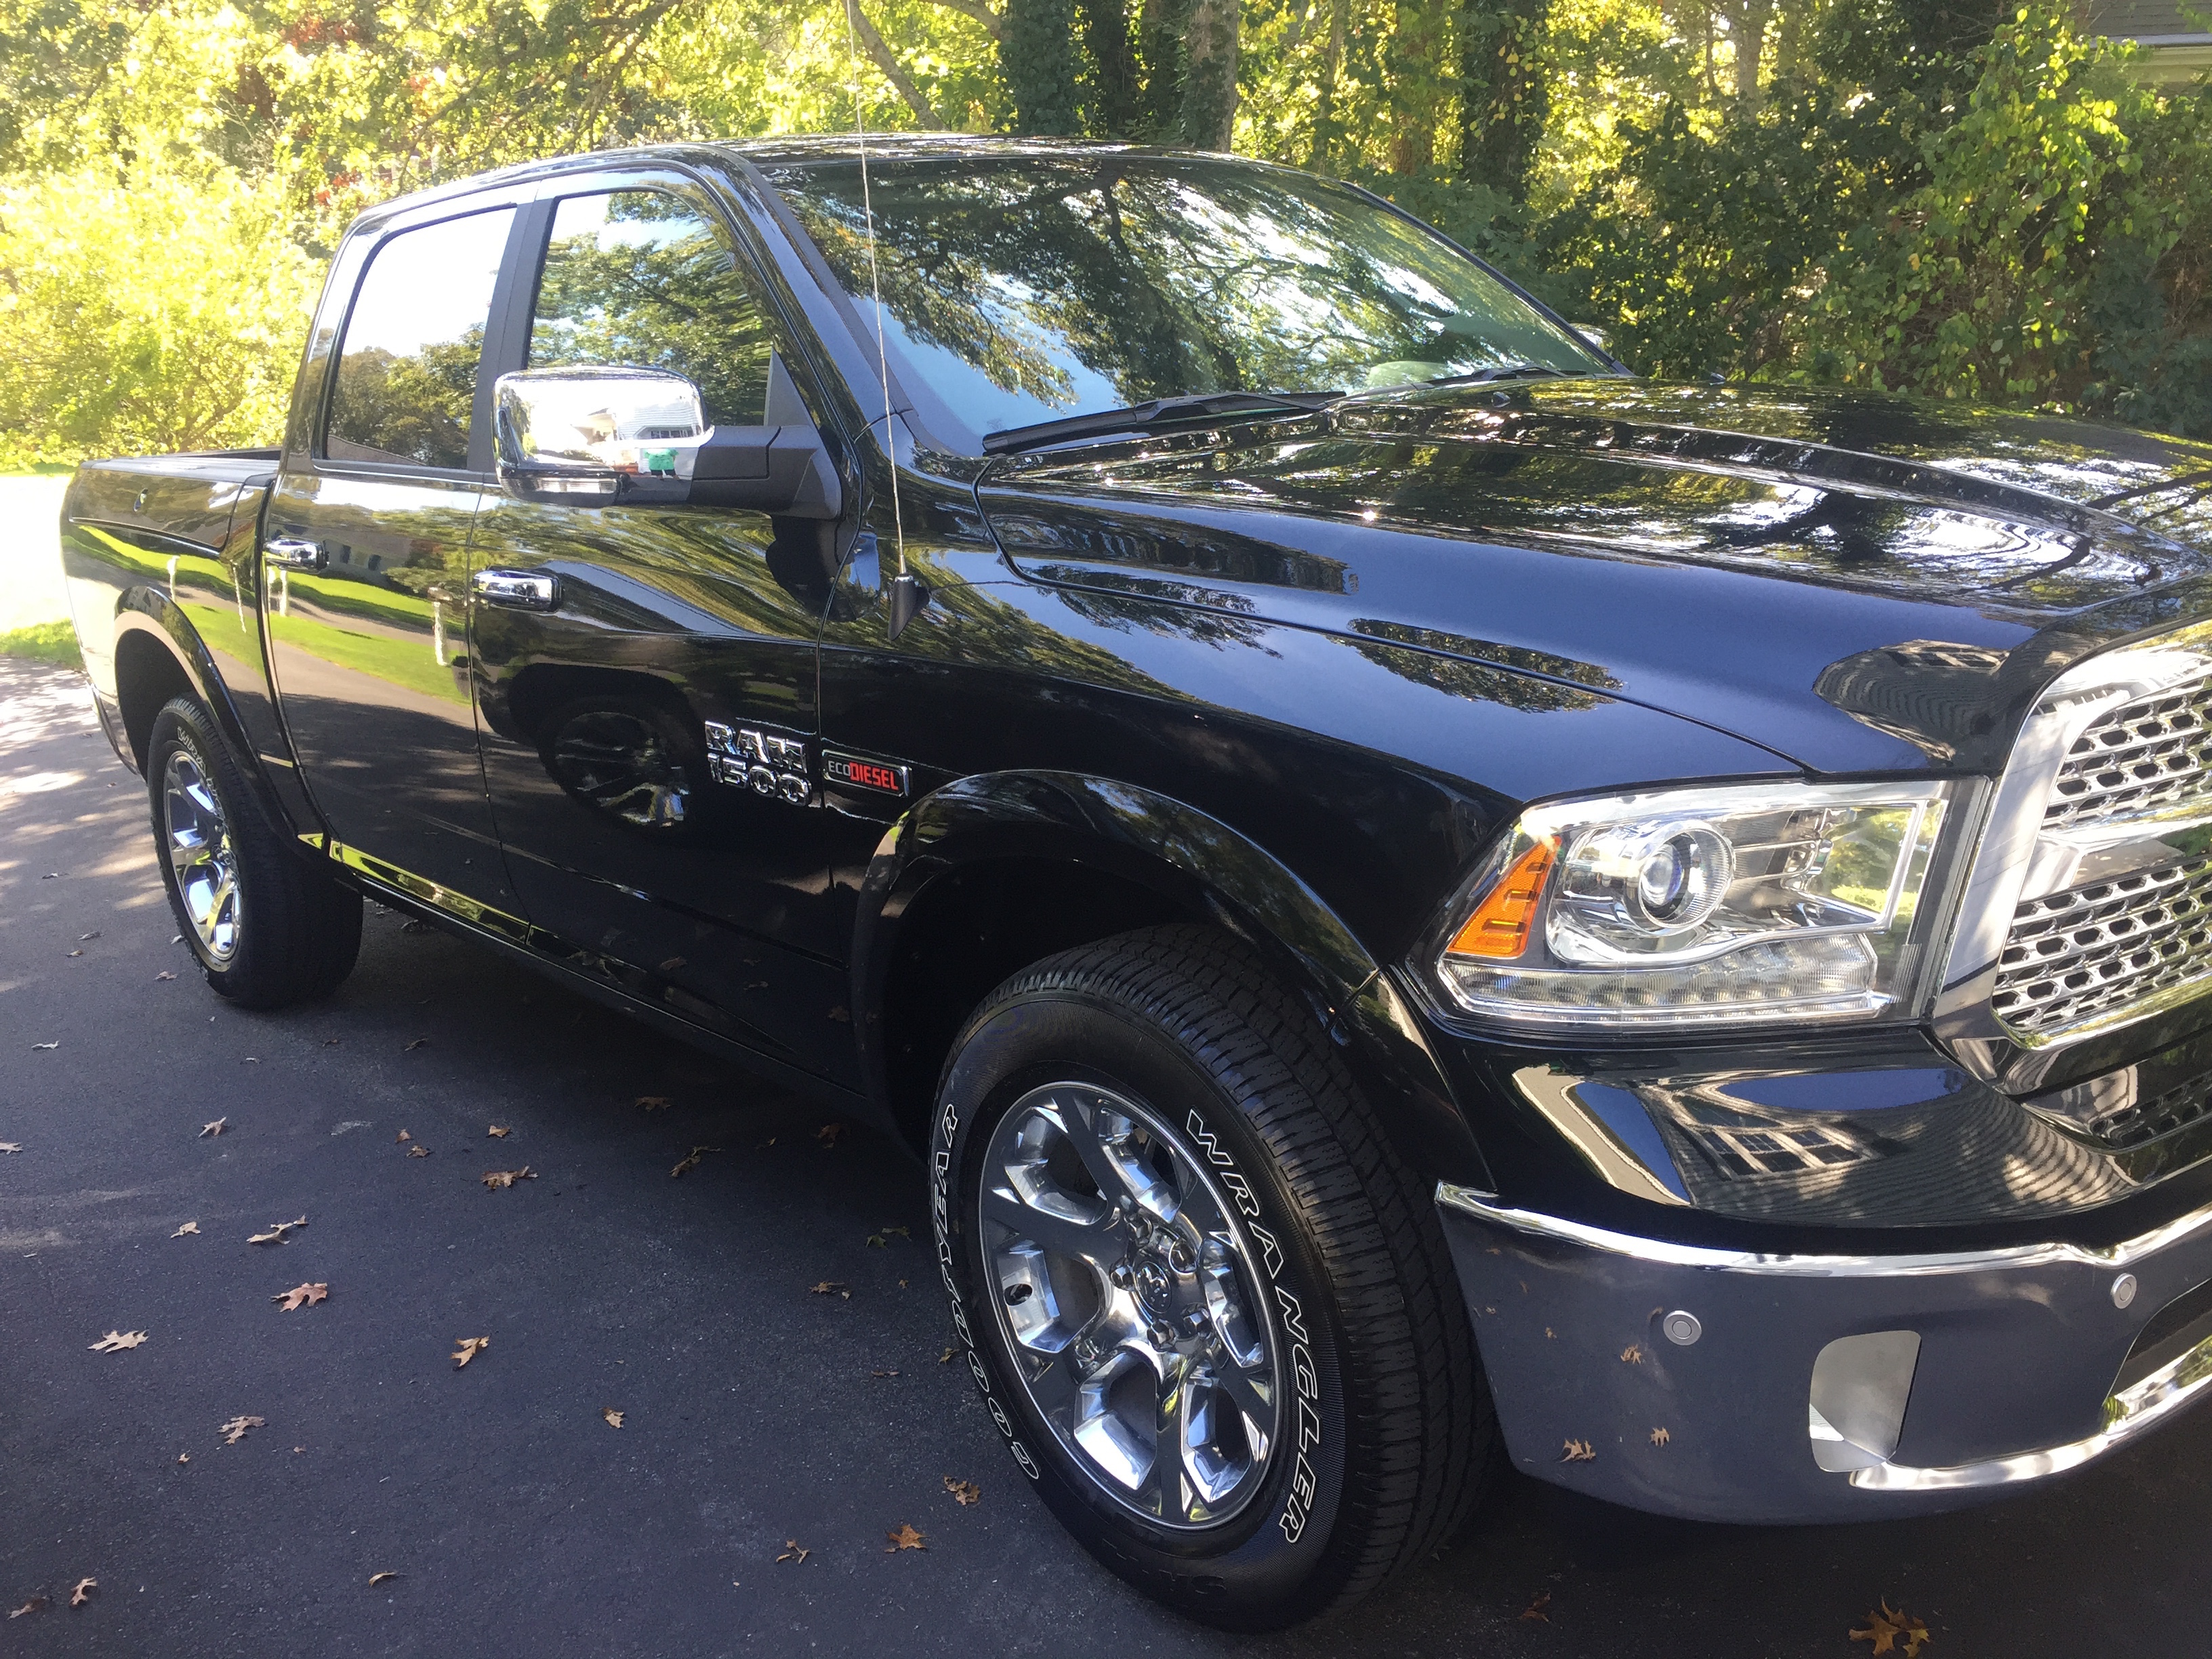 2017 Ram 1500 Laramie Ecosel Should I Img 2719 Jpg